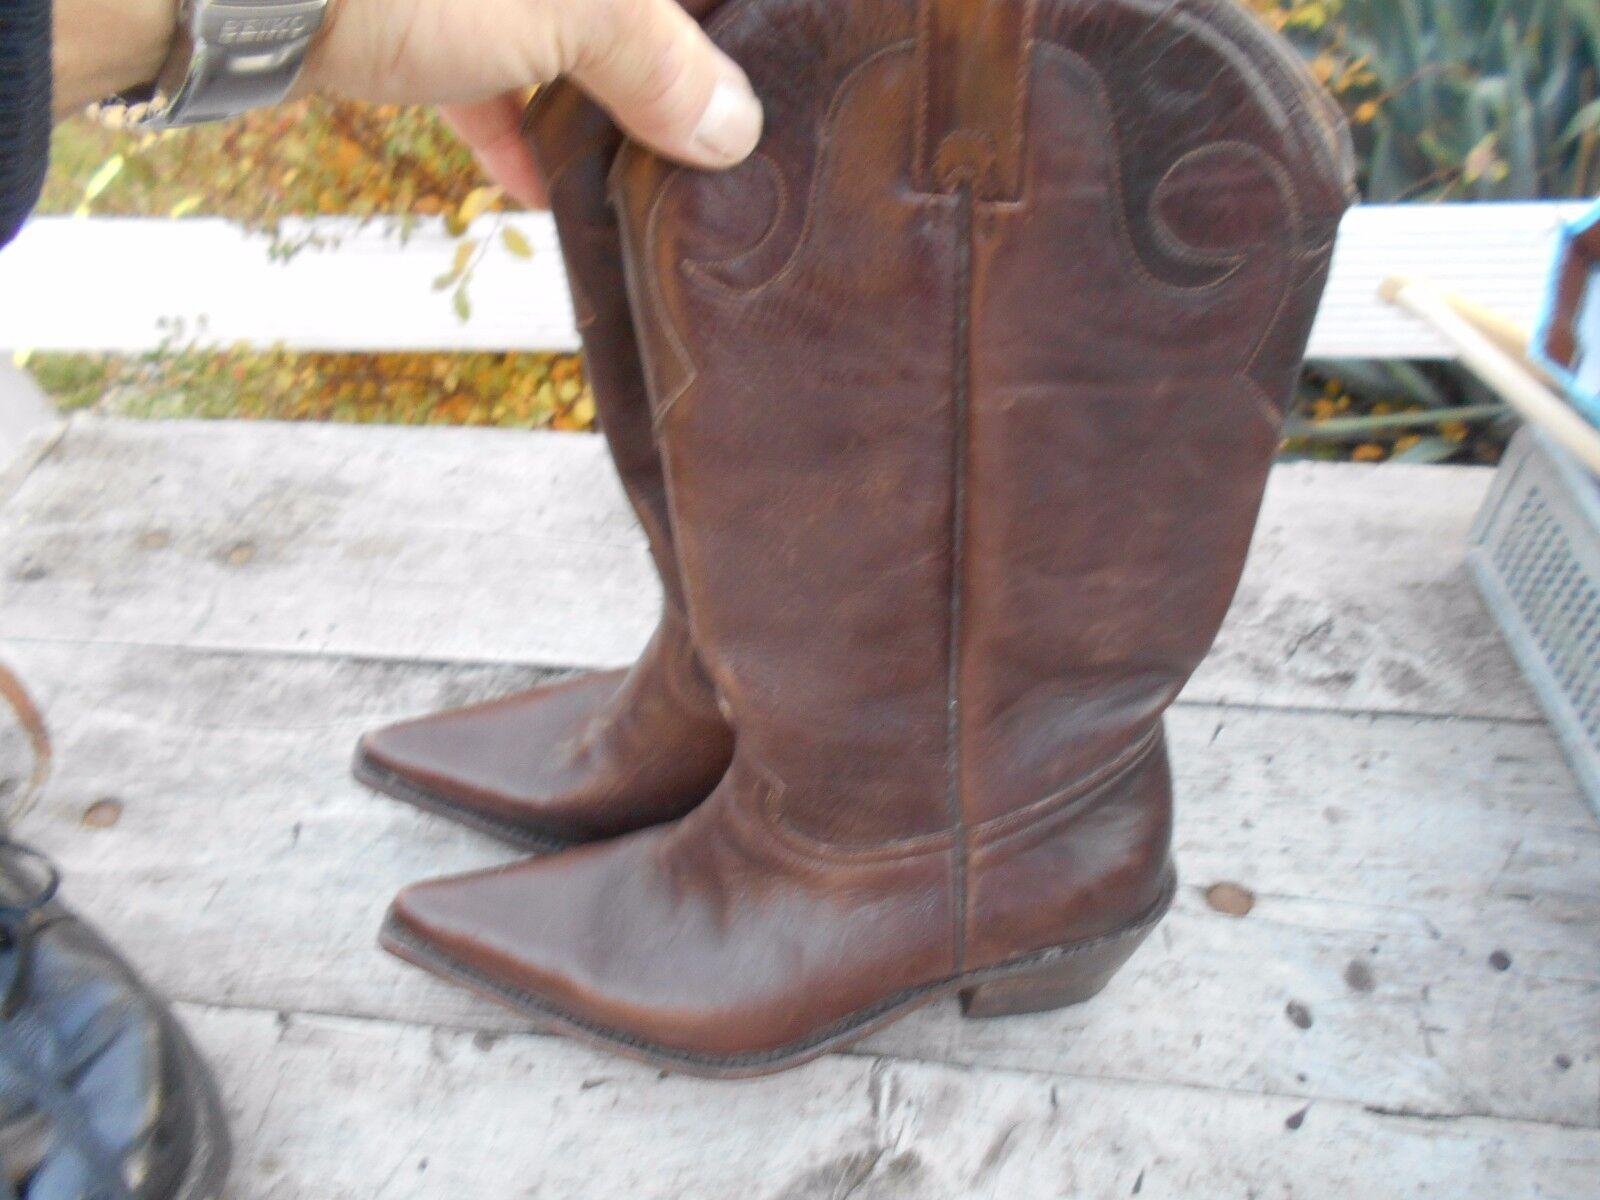 BOTTES BUFFALO TYPE SANTIAGS brown T 40 TBE A  ACH IMM FP RED MOND RELAY